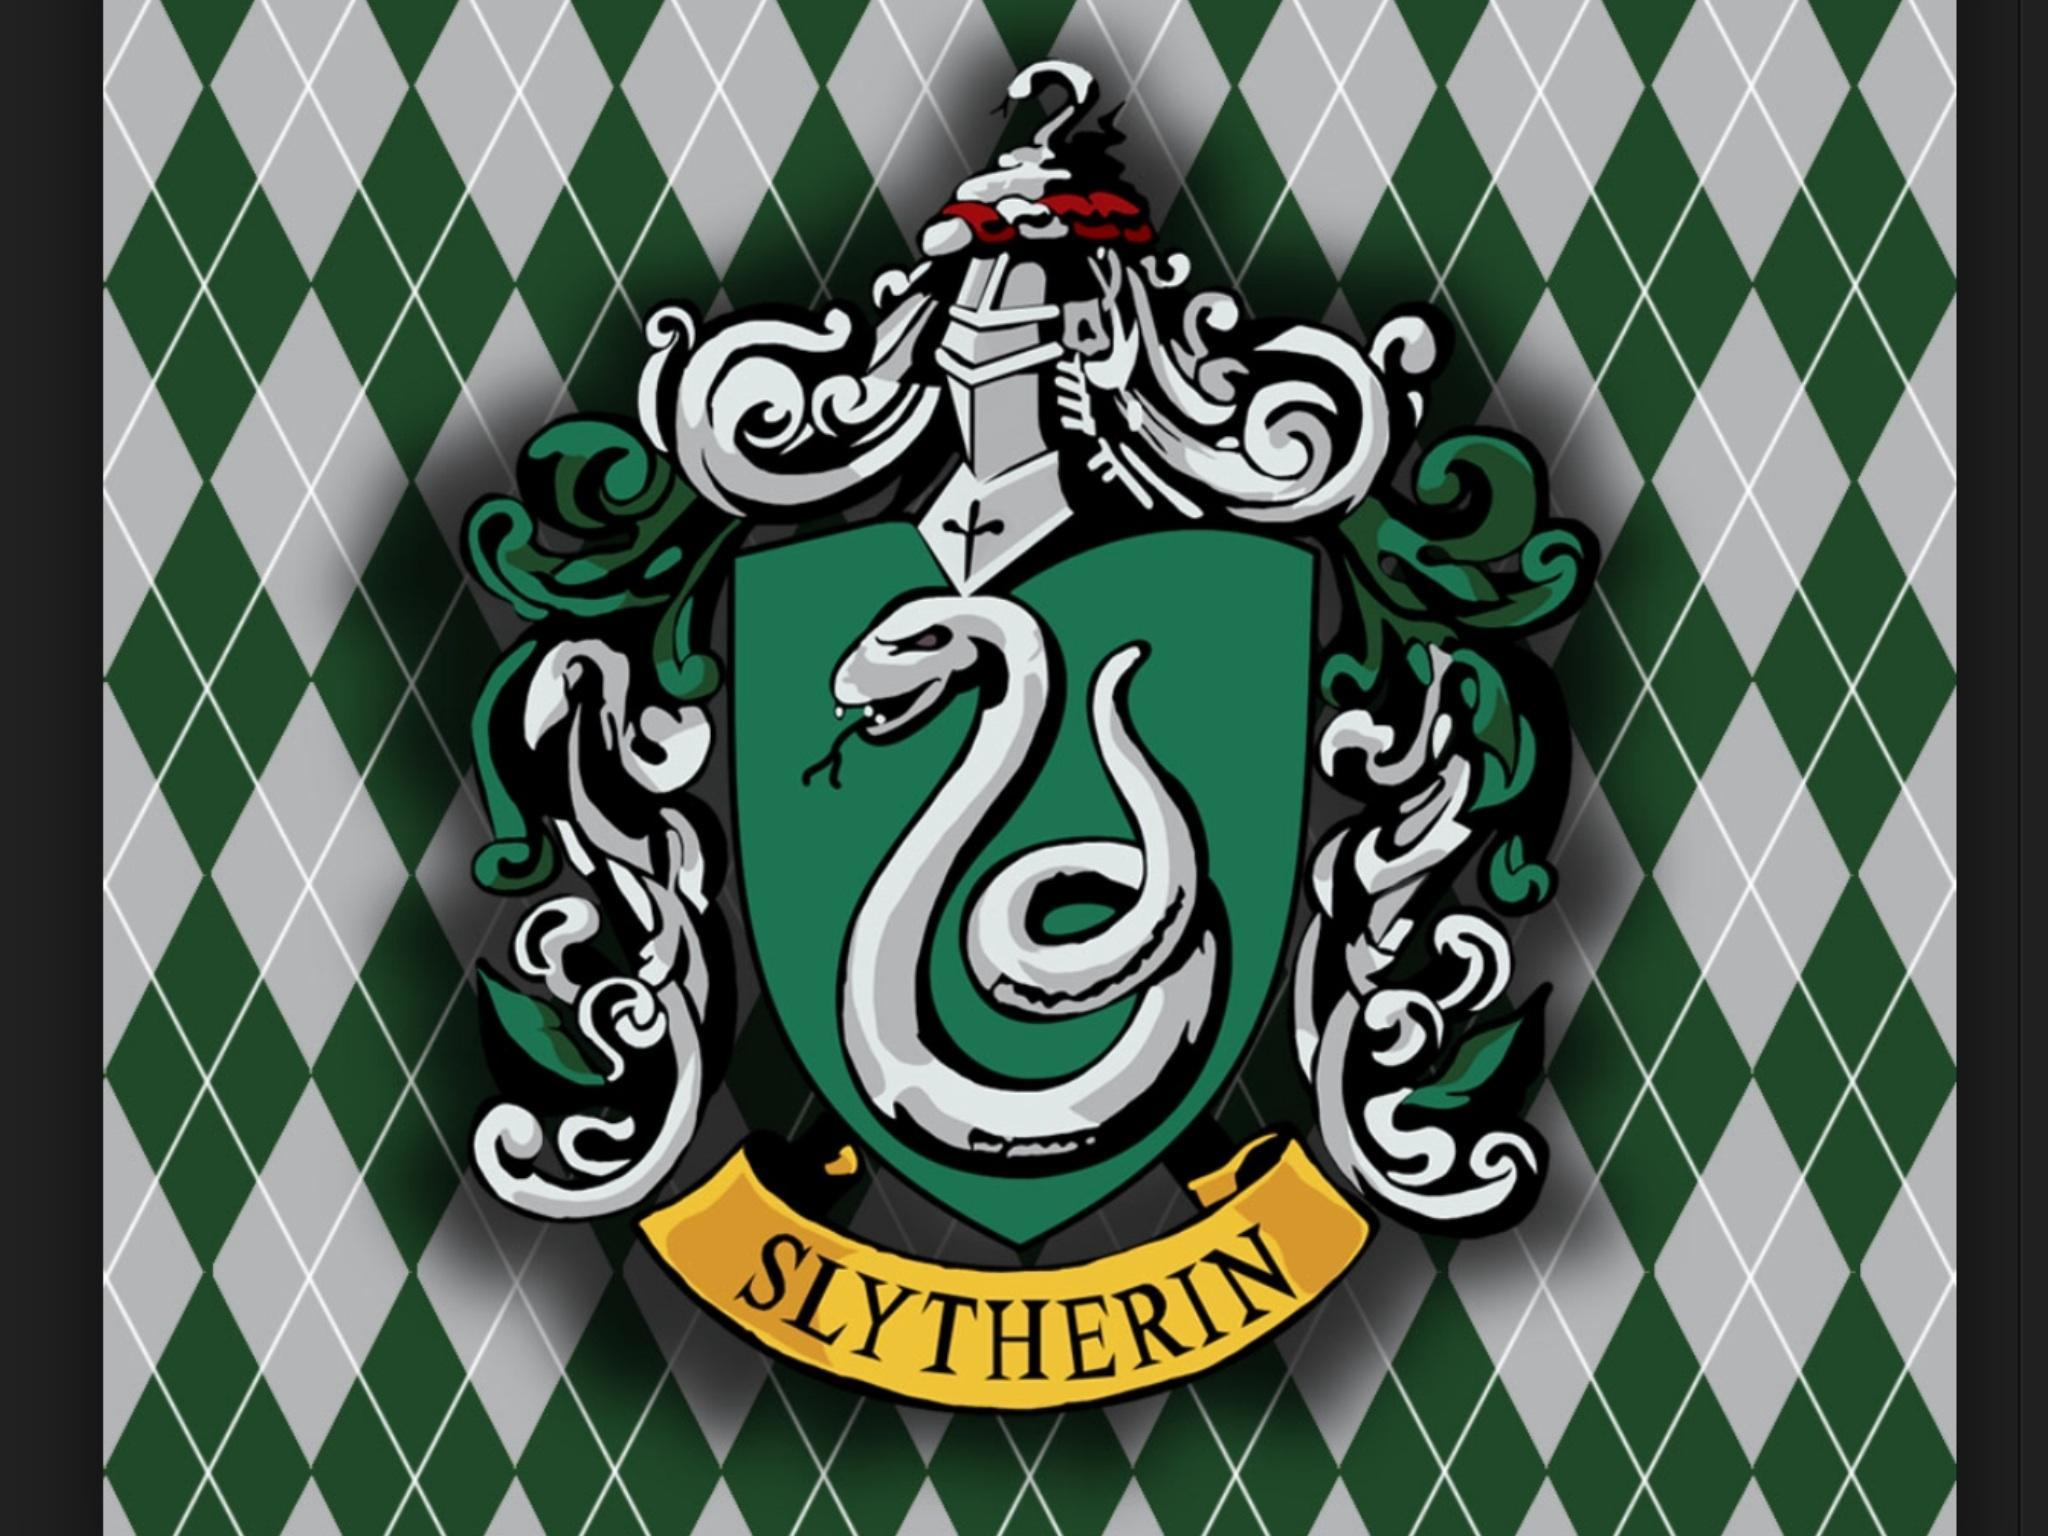 SlytherinSnake